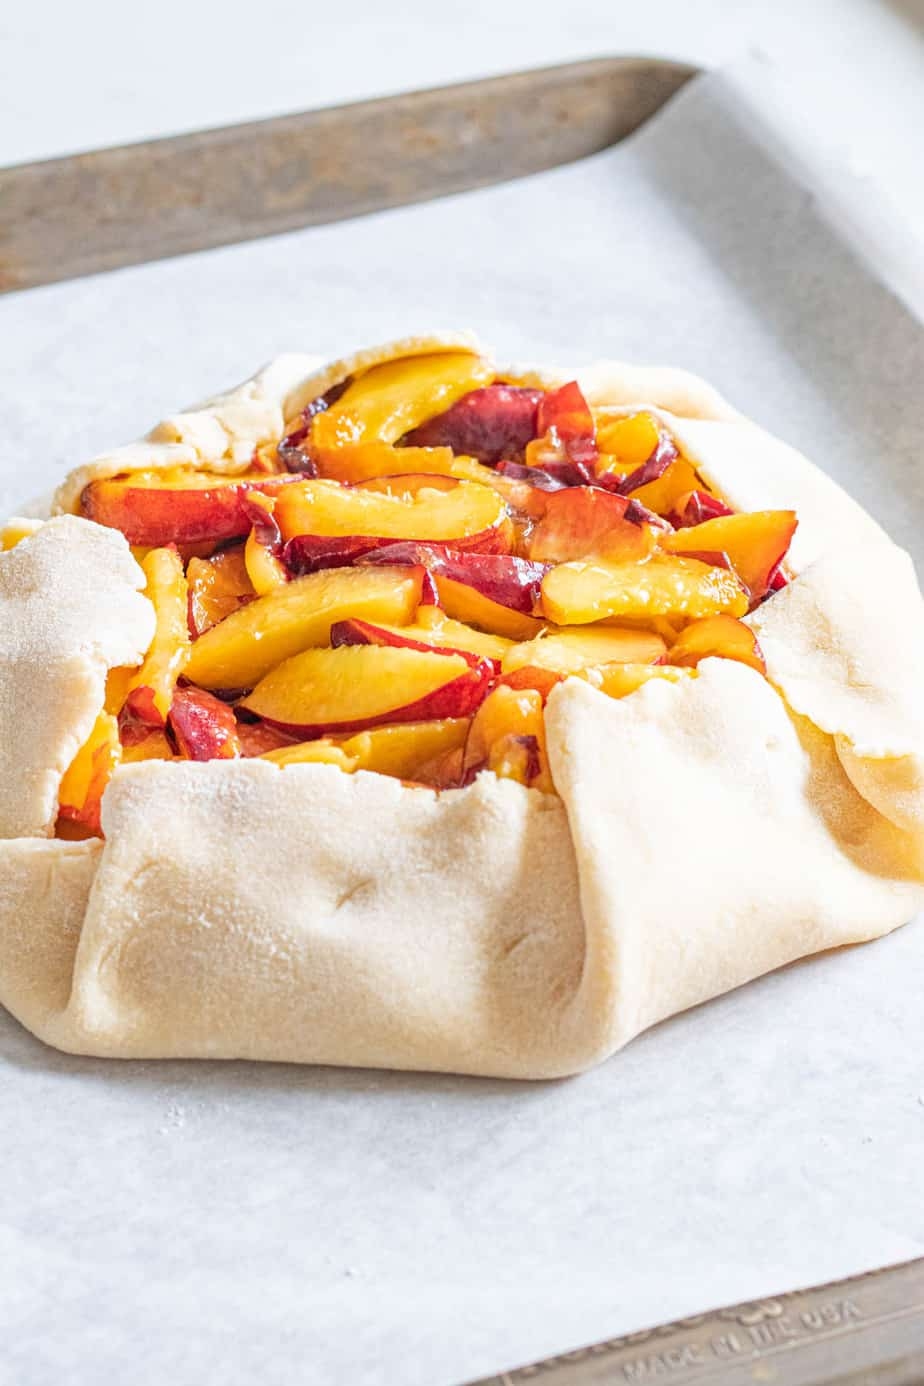 Uncooked peach galette on baking sheet